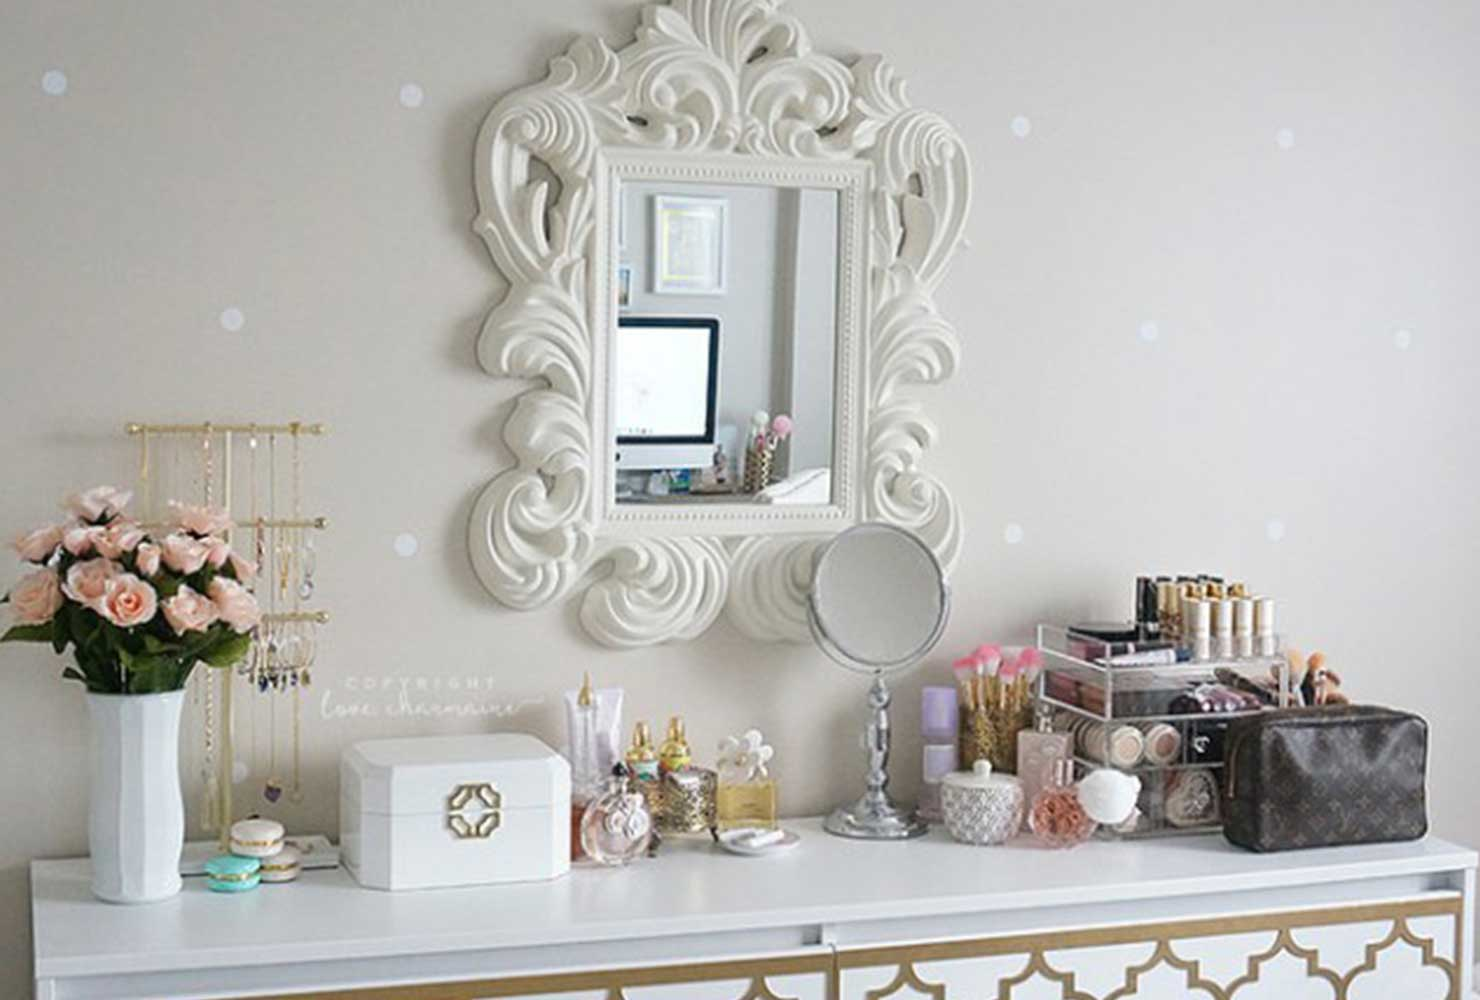 35 Makeup Room Ideas To Brighten Your Morning Routine ... on Makeup Room Ideas  id=85188